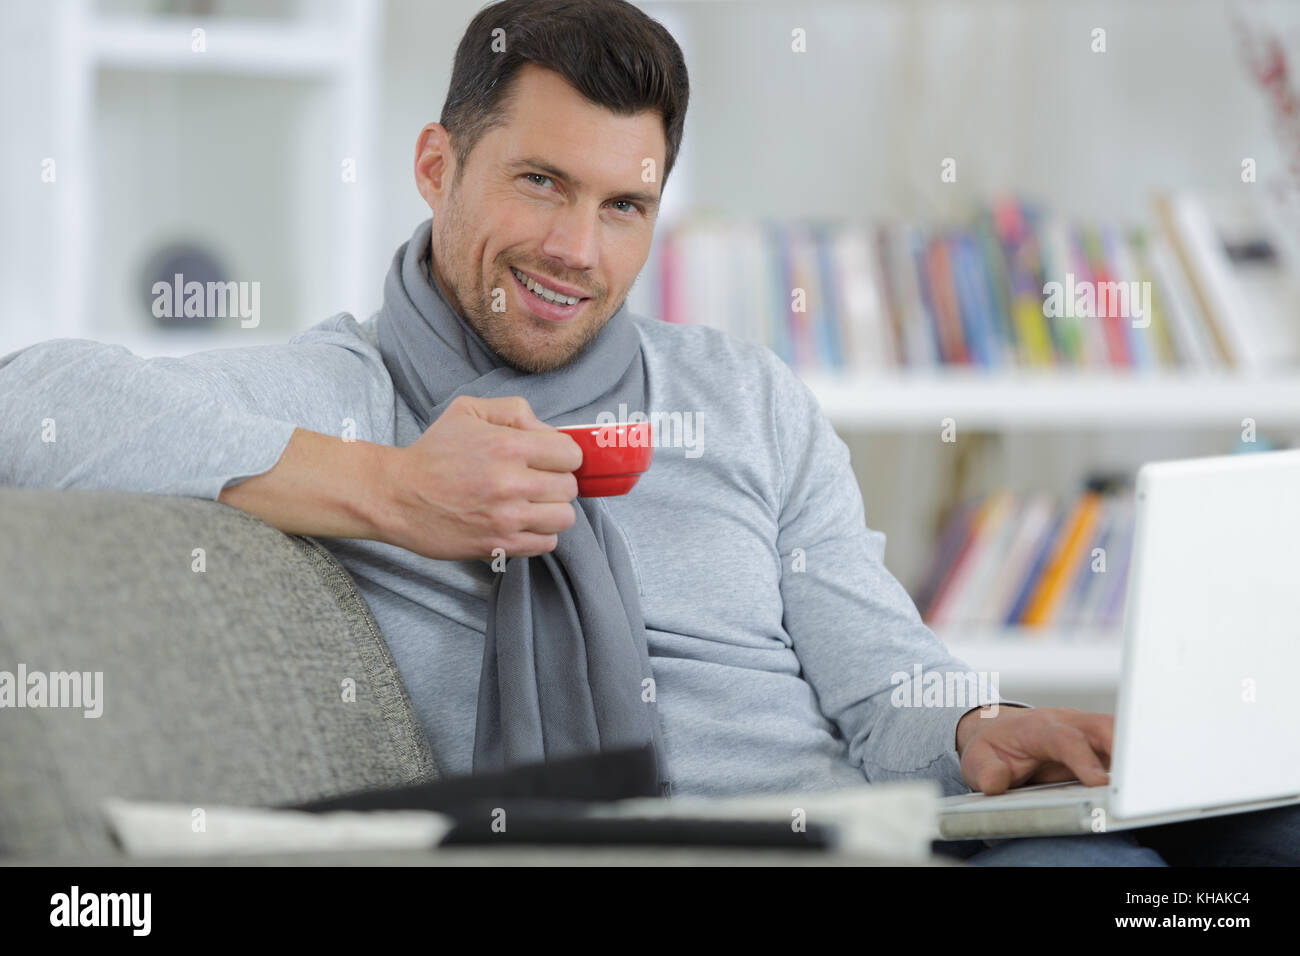 handsome man drinking coffee while working with laptop at home - Stock Image